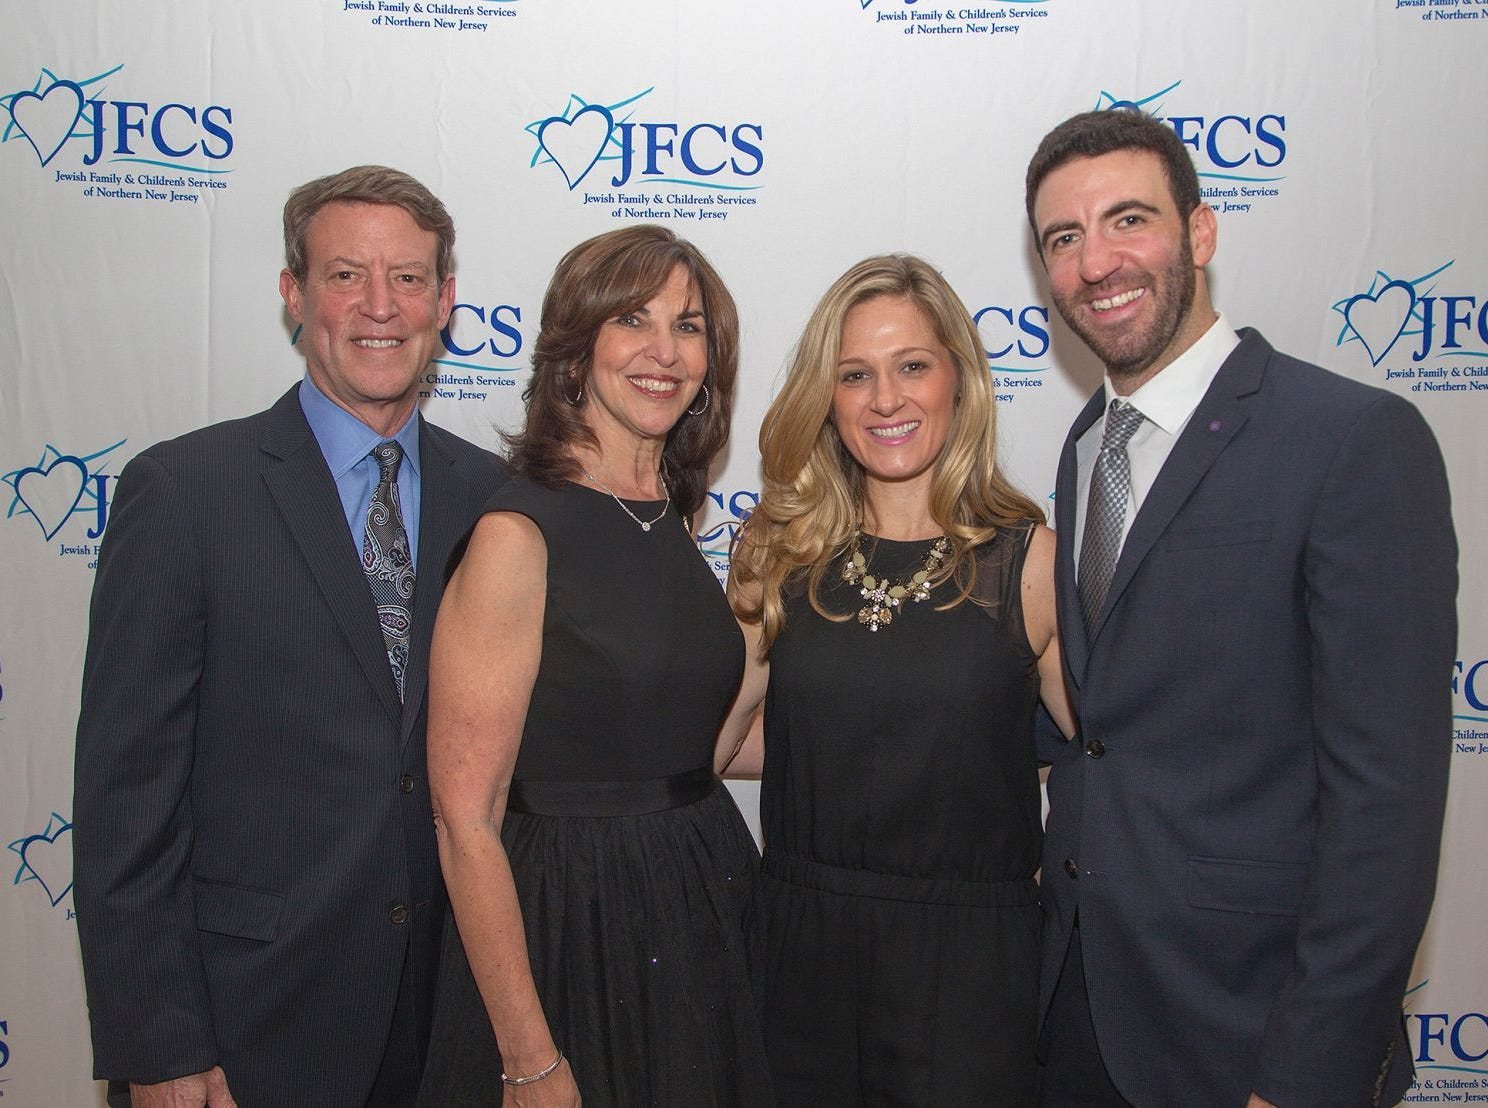 David Petak, Jayne Petak, Nikki Hayes, Derek Petak. Jewish Family & Children's Services of Northern New Jersey held its annual gala at the Edgewood Country Club in River Vale. The evening honored Shira Feuerstein, Jayne Petak, and Alan Scharfstein for their leadership, support, and dedication. 11/18/2018